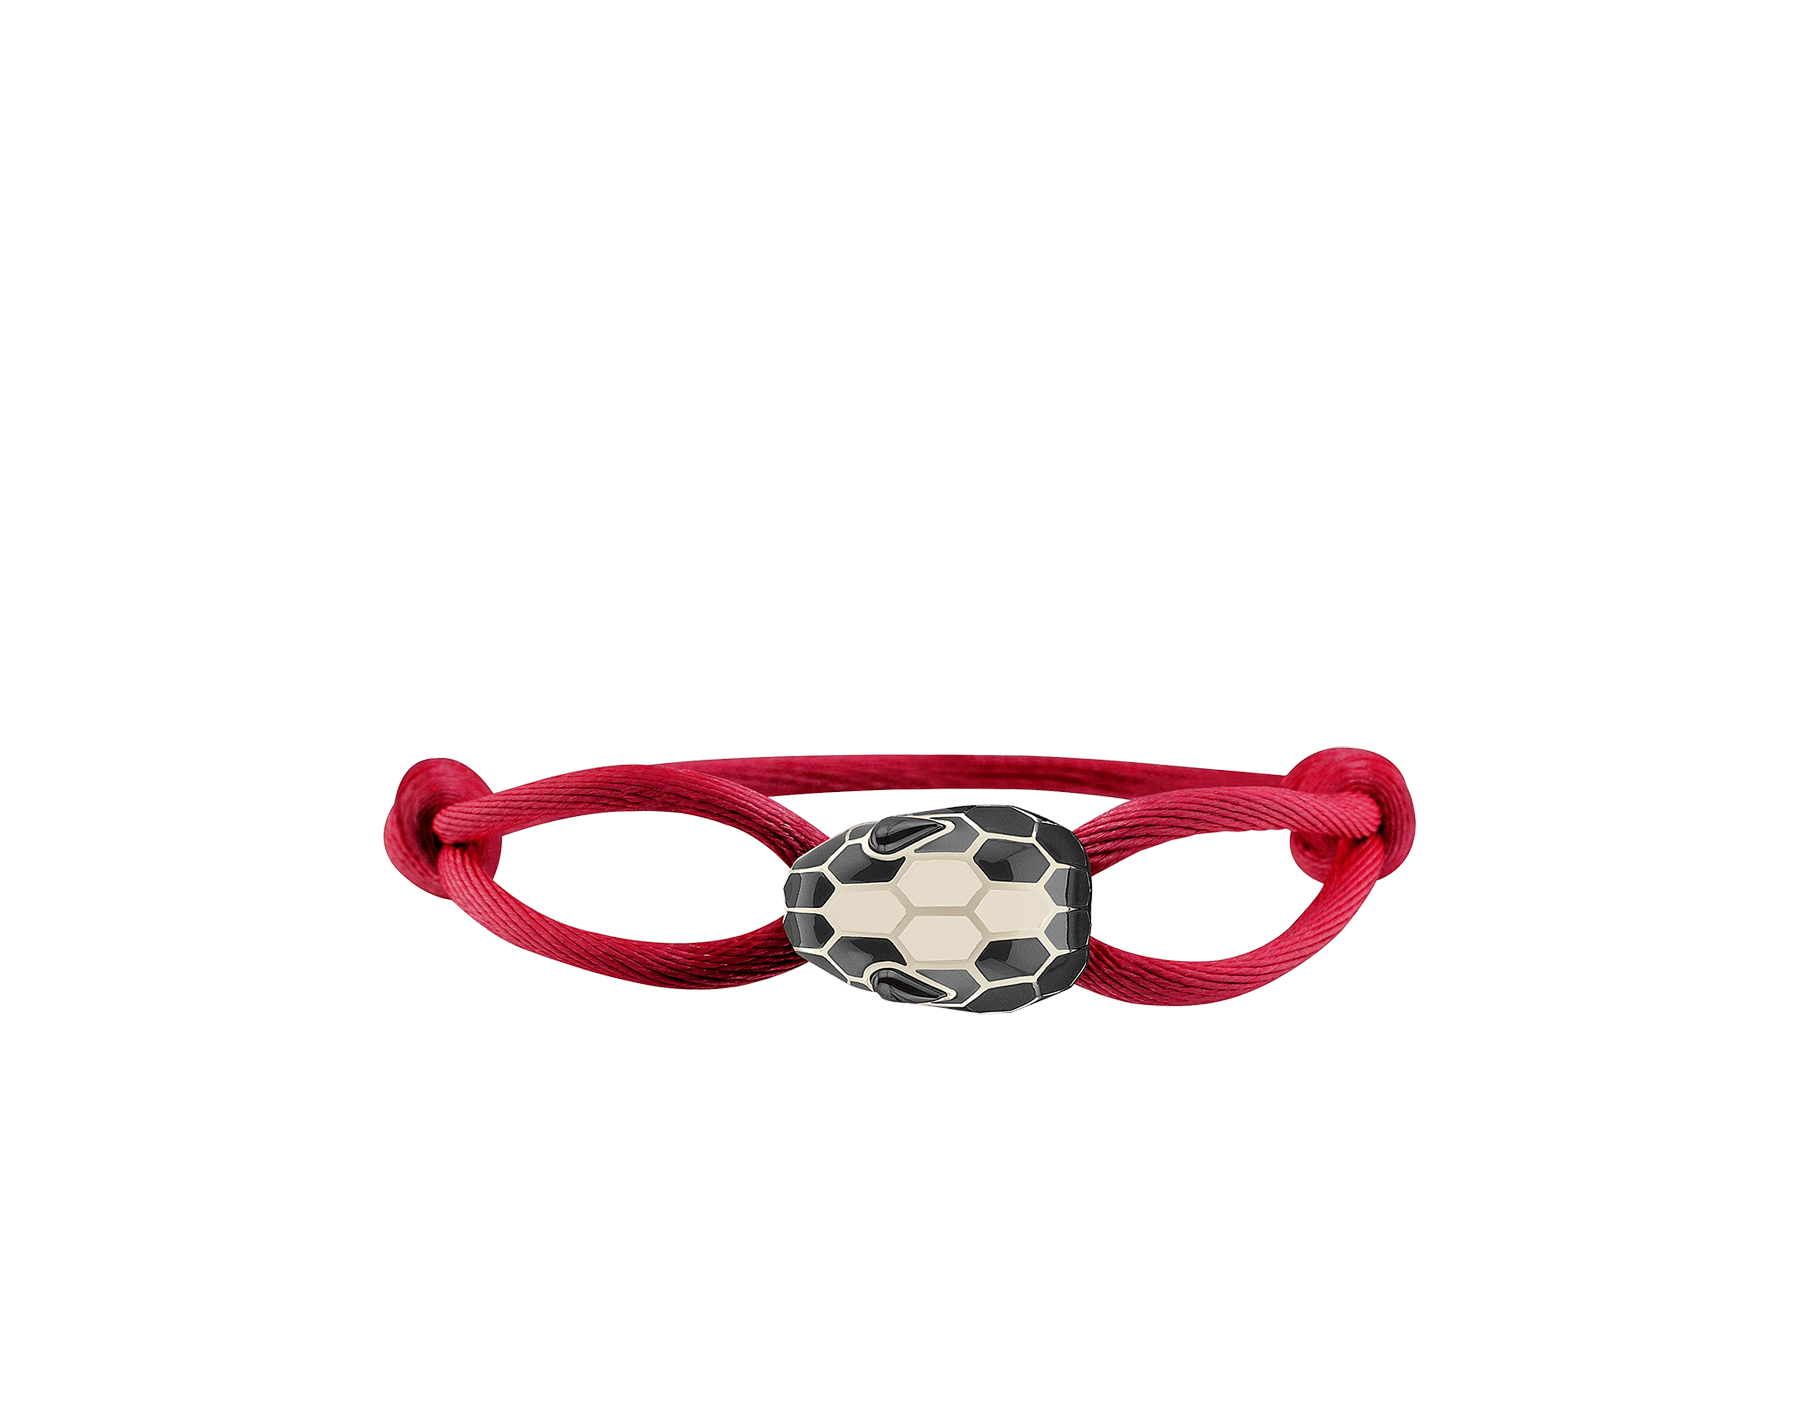 Serpenti Forever bracelet in ruby red fabric with an iconic snakehead décor in black and white enamel. 287823 image 1